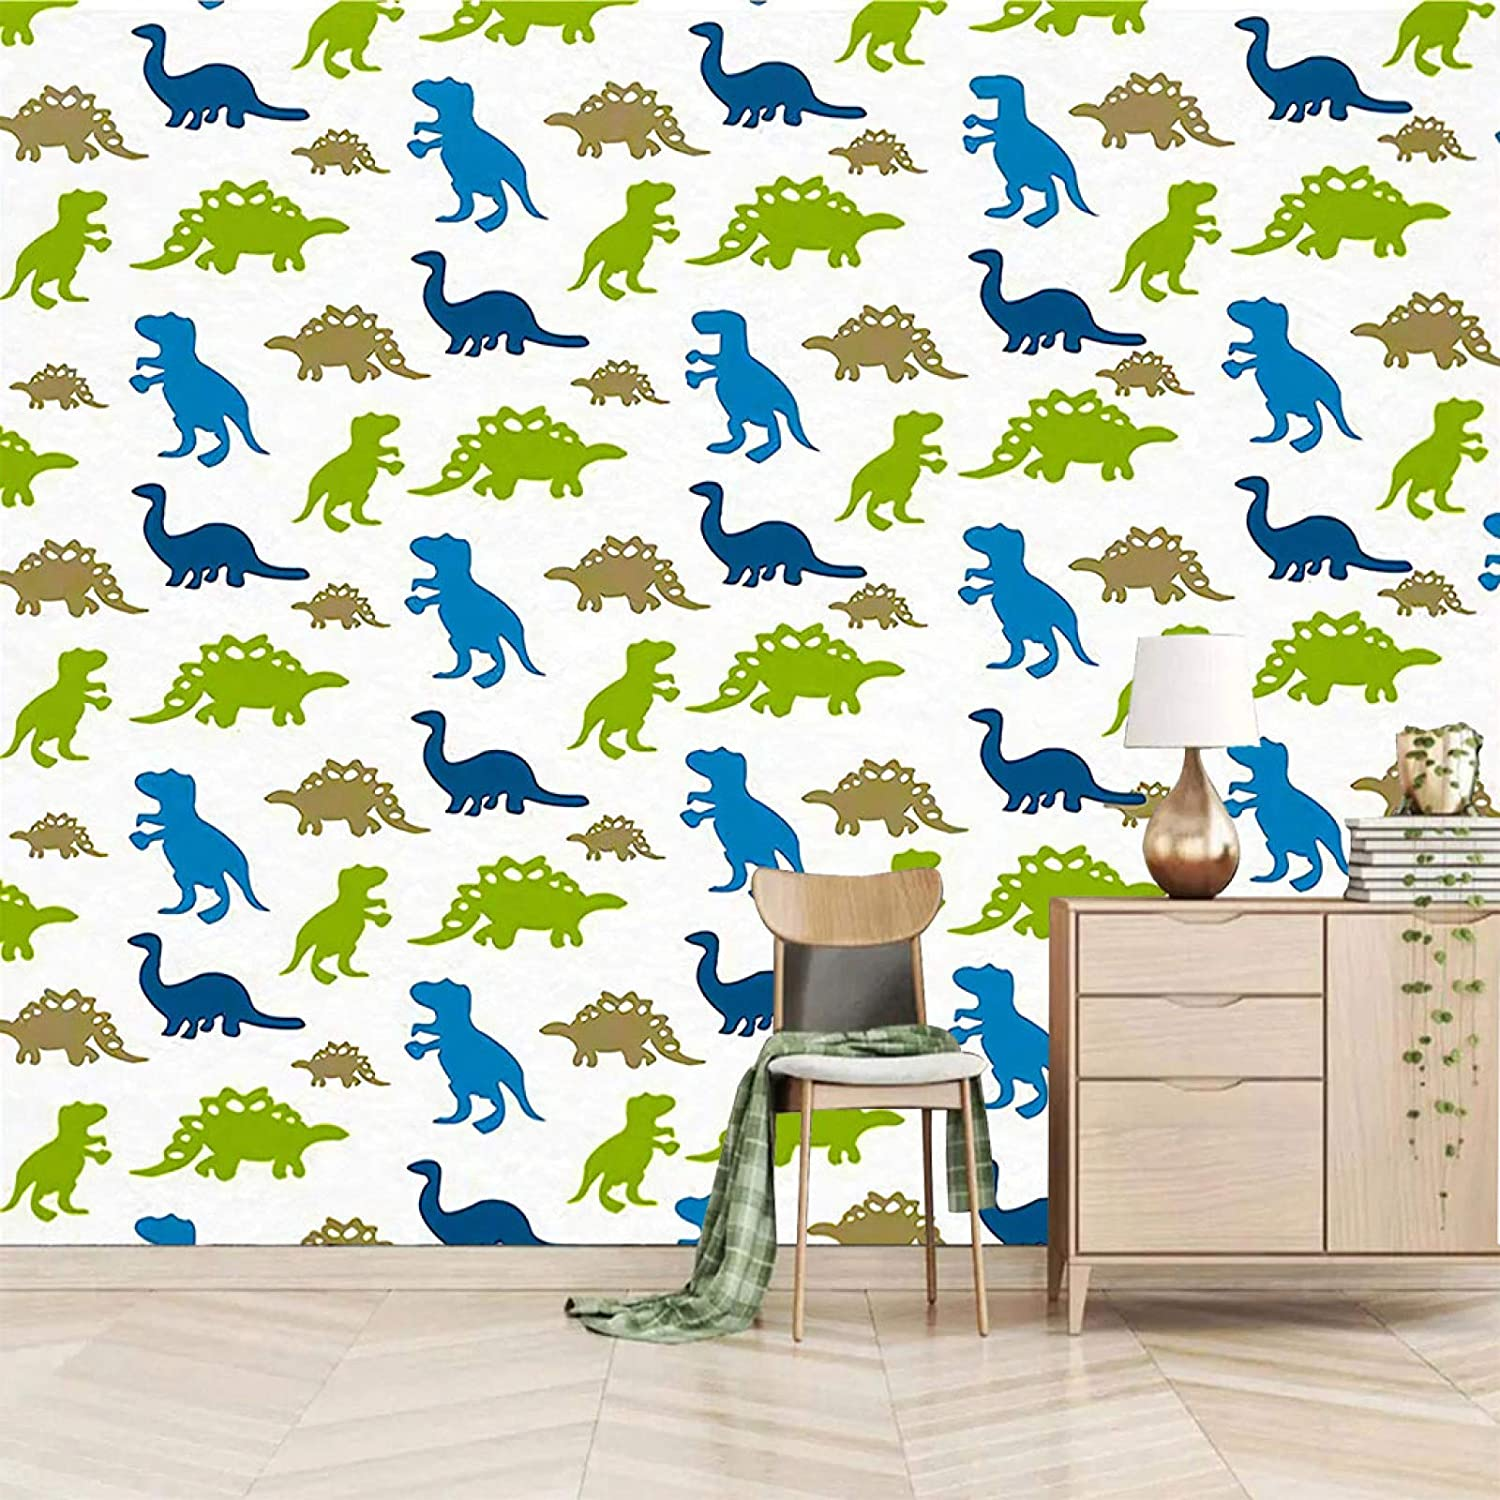 XiaoCha Simple Colorful Animal Dinosaur Wall Self-Adhesive sold out 3D 35% OFF St